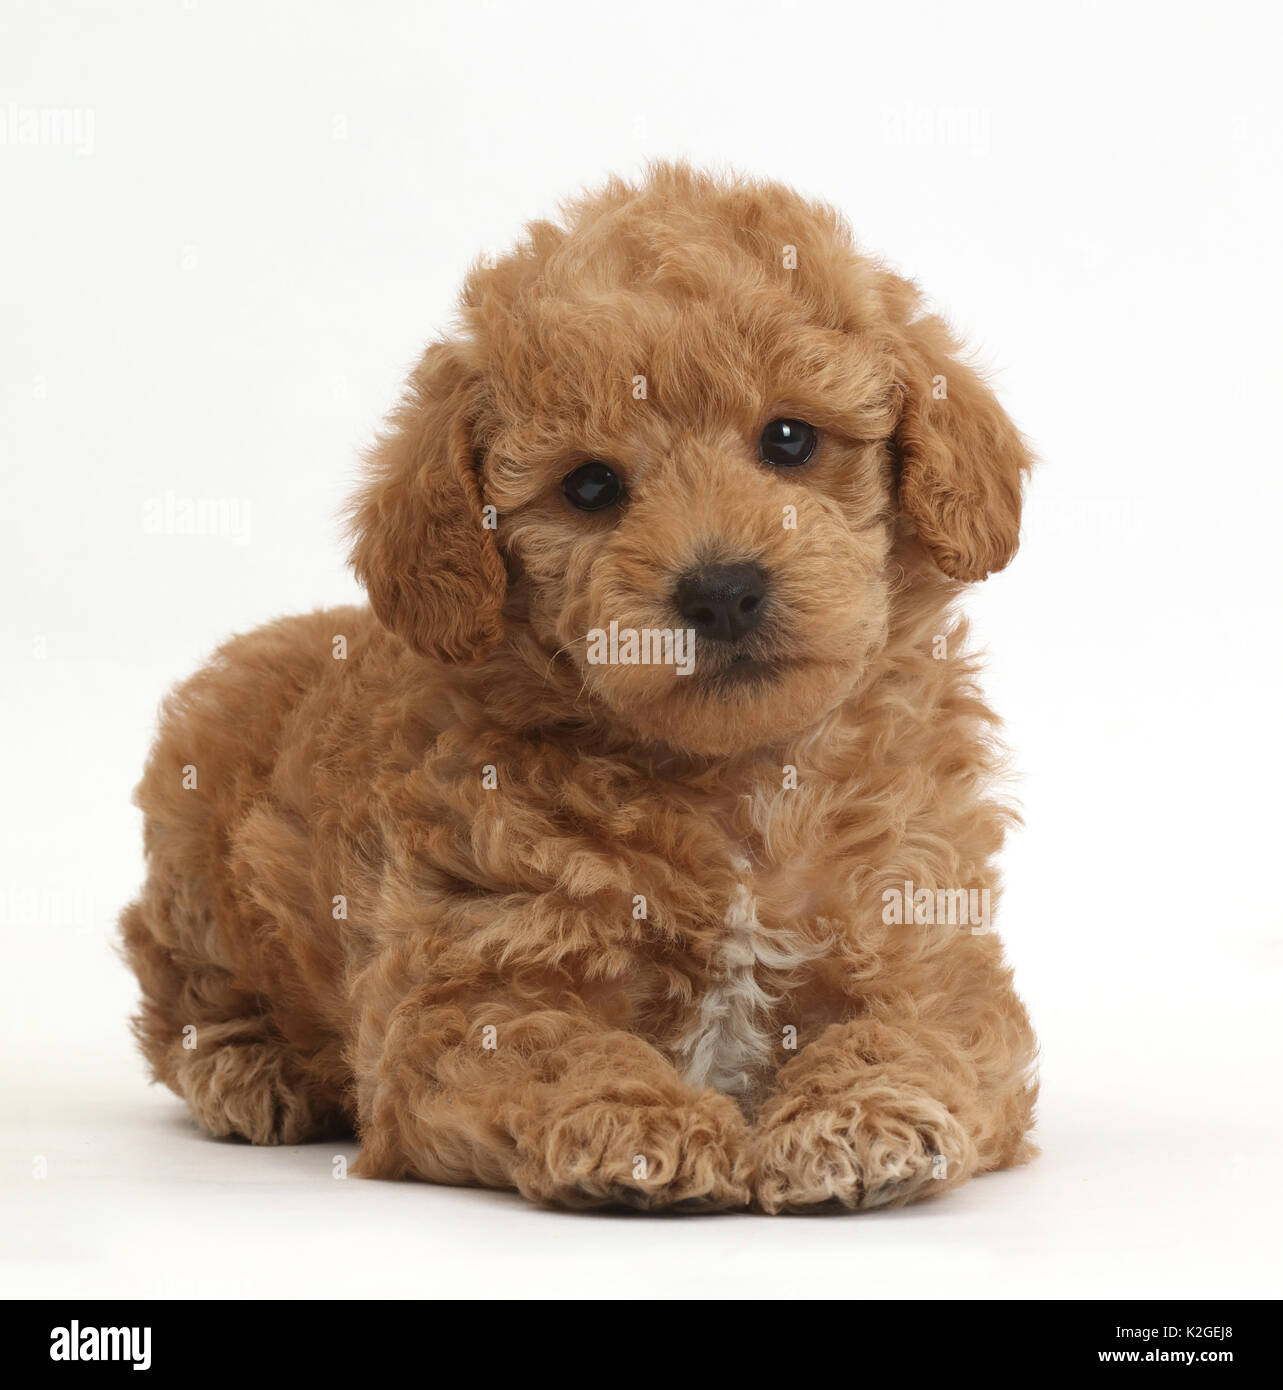 Toy Goldendoodle F1b Golden Retriever Cross Toy Poodle